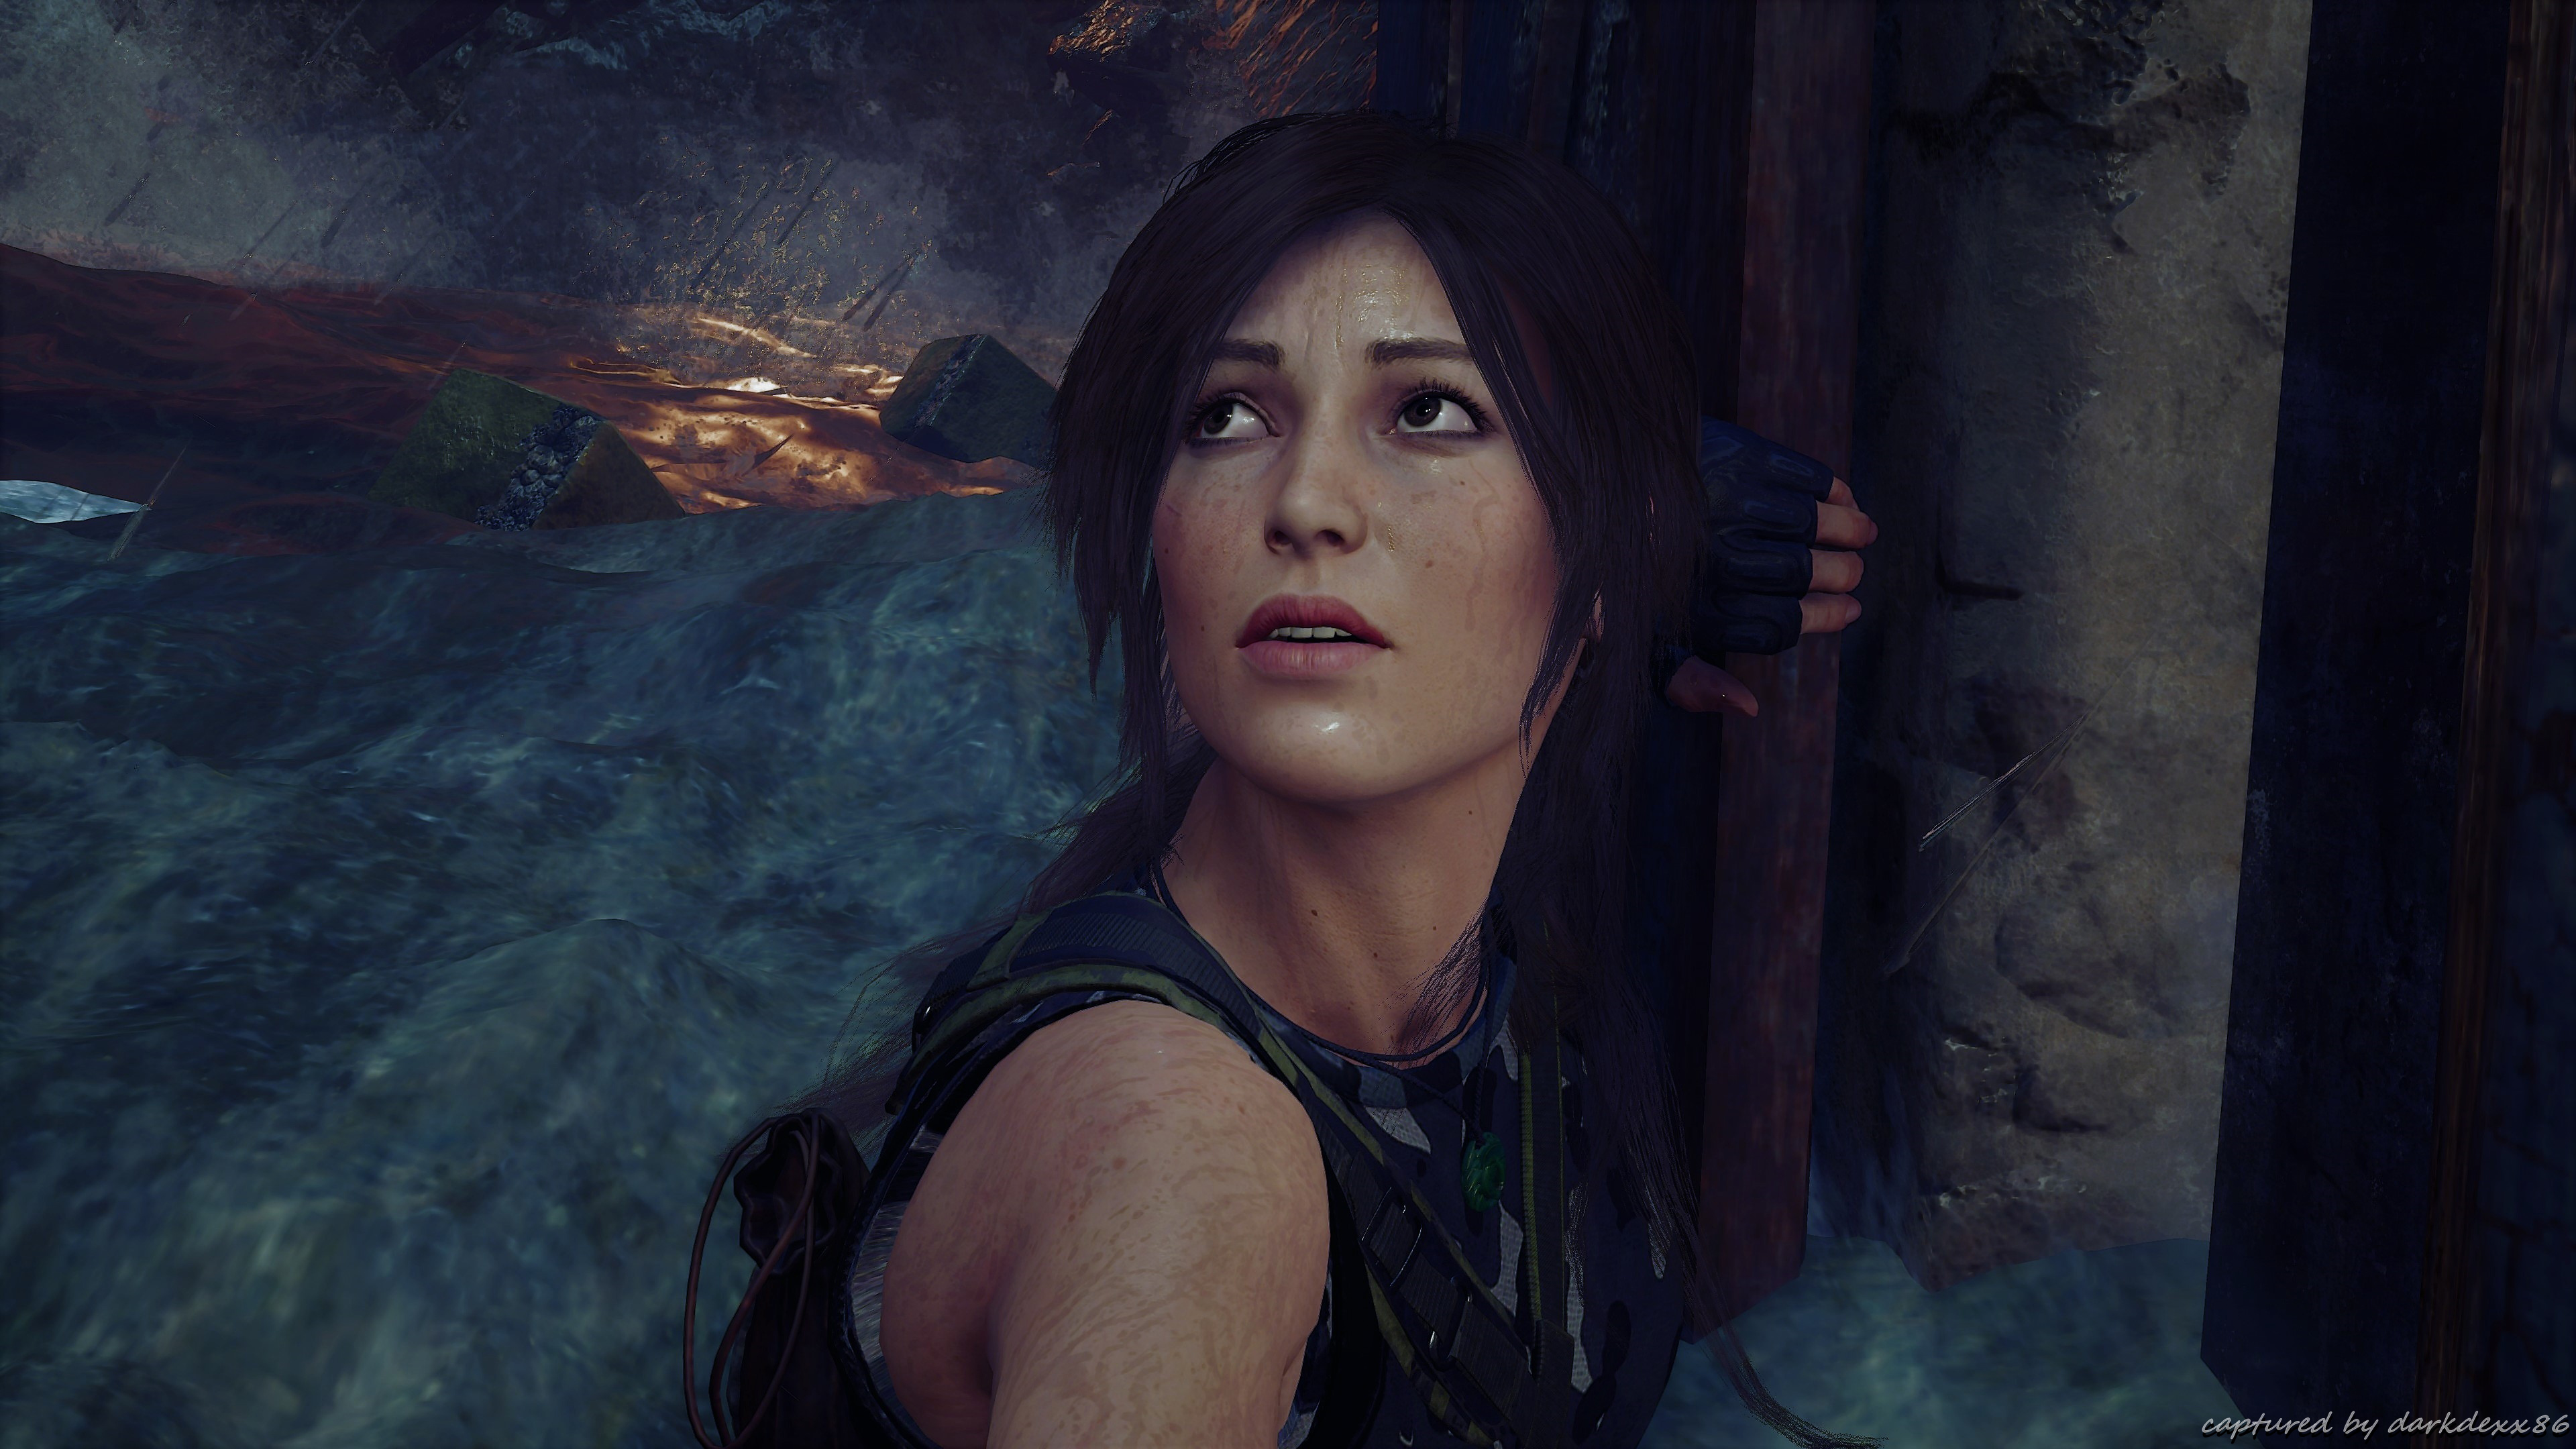 shadow of the tomb raider lara croft 4k 1545589552 - Shadow Of The Tomb Raider Lara Croft 4k - tomb raider wallpapers, shadow of the tomb raider wallpapers, lara croft wallpapers, hd-wallpapers, games wallpapers, 4k-wallpapers, 2018 games wallpapers